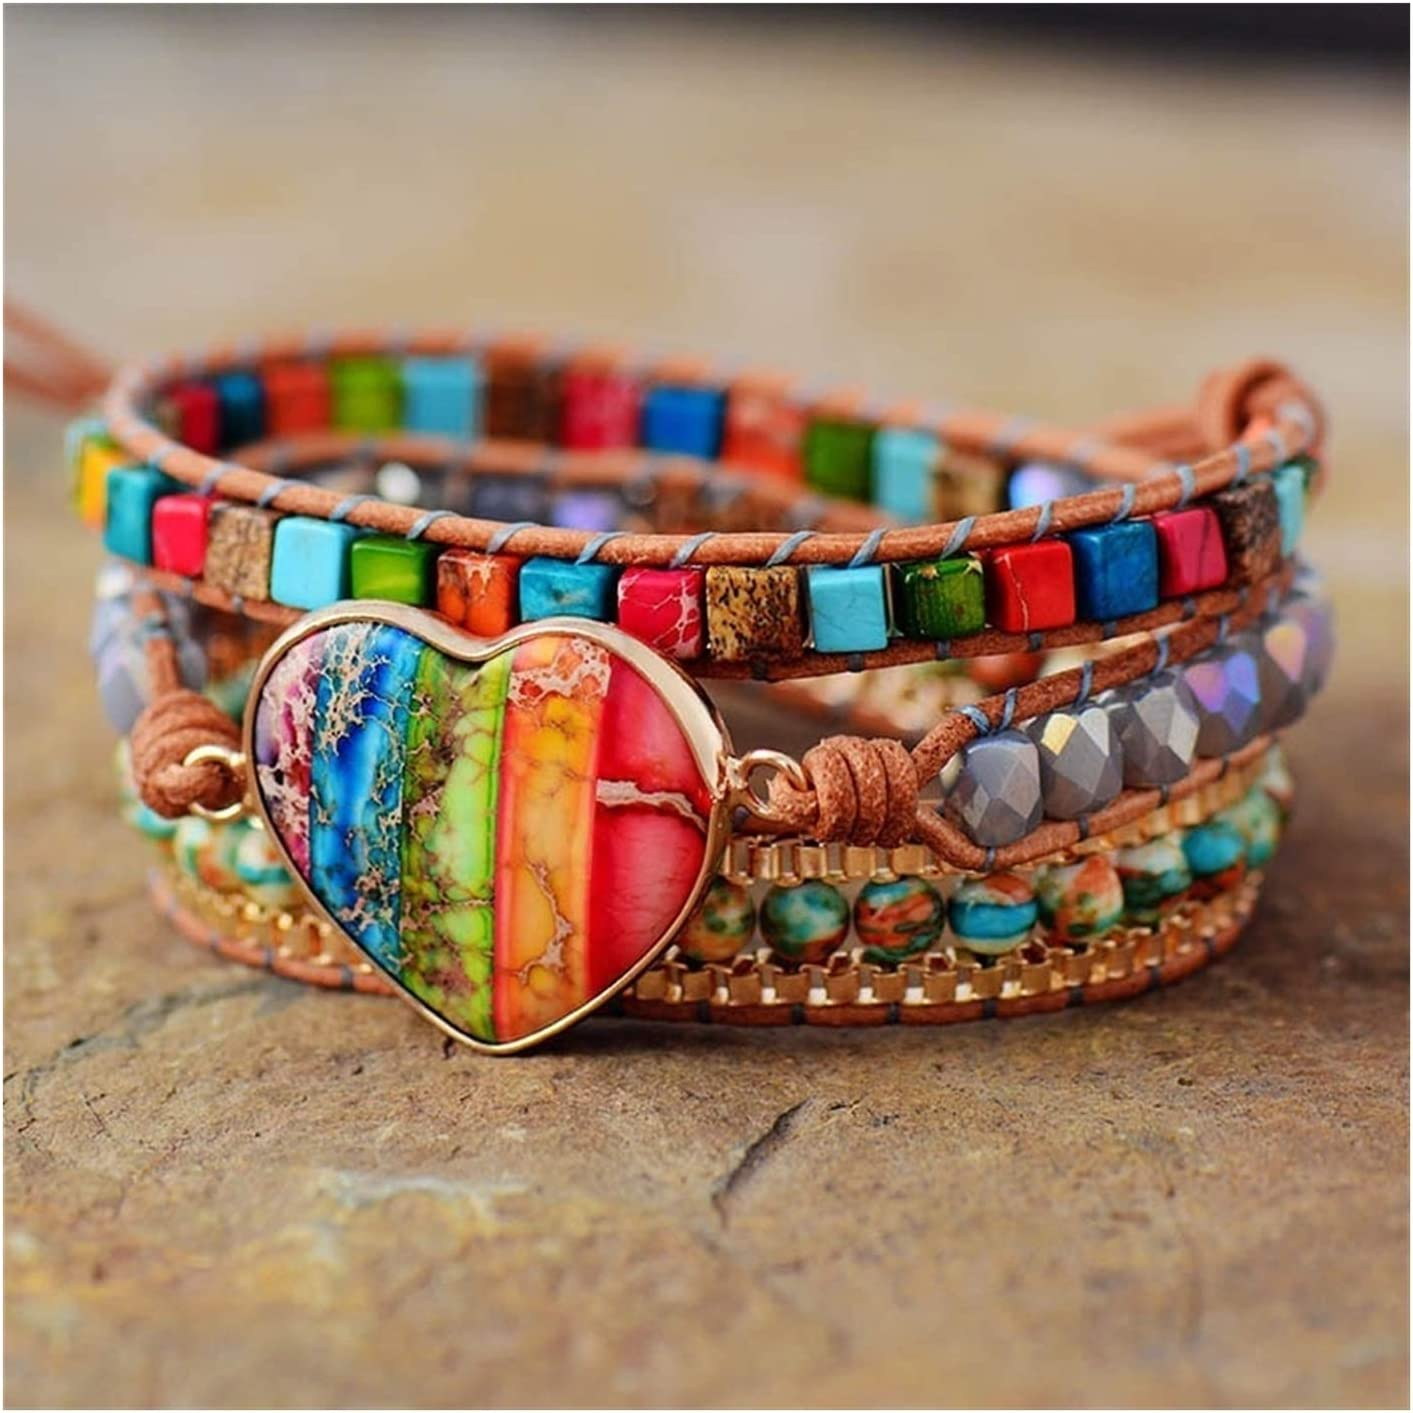 AOSUAI Chakra Leather Wrap Bracelets Mix 3 Heart Max 81% OFF Shape Discount is also underway Str Stone